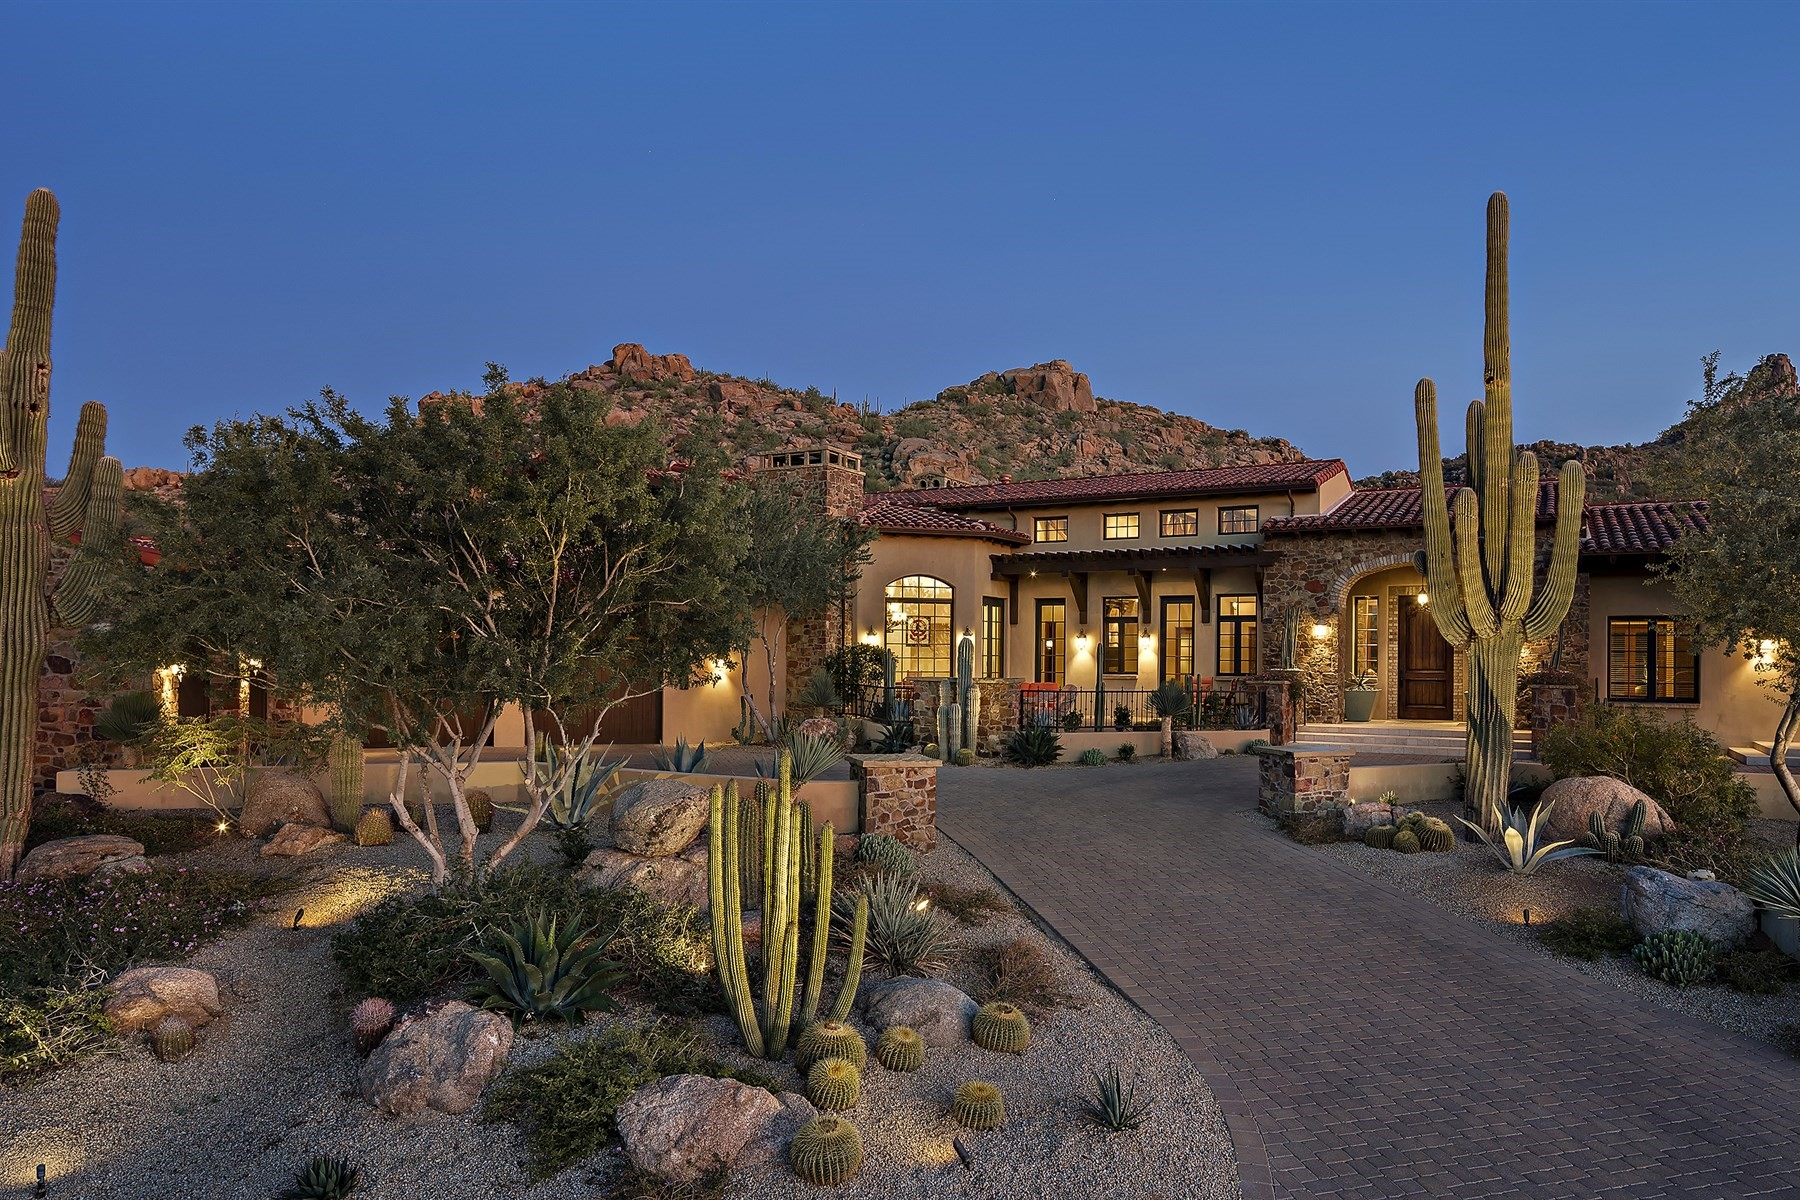 獨棟家庭住宅 為 出售 在 Stunning Estancia home with amazing views 27473 N 97th Pl, Scottsdale, 亞利桑那州, 85262 美國